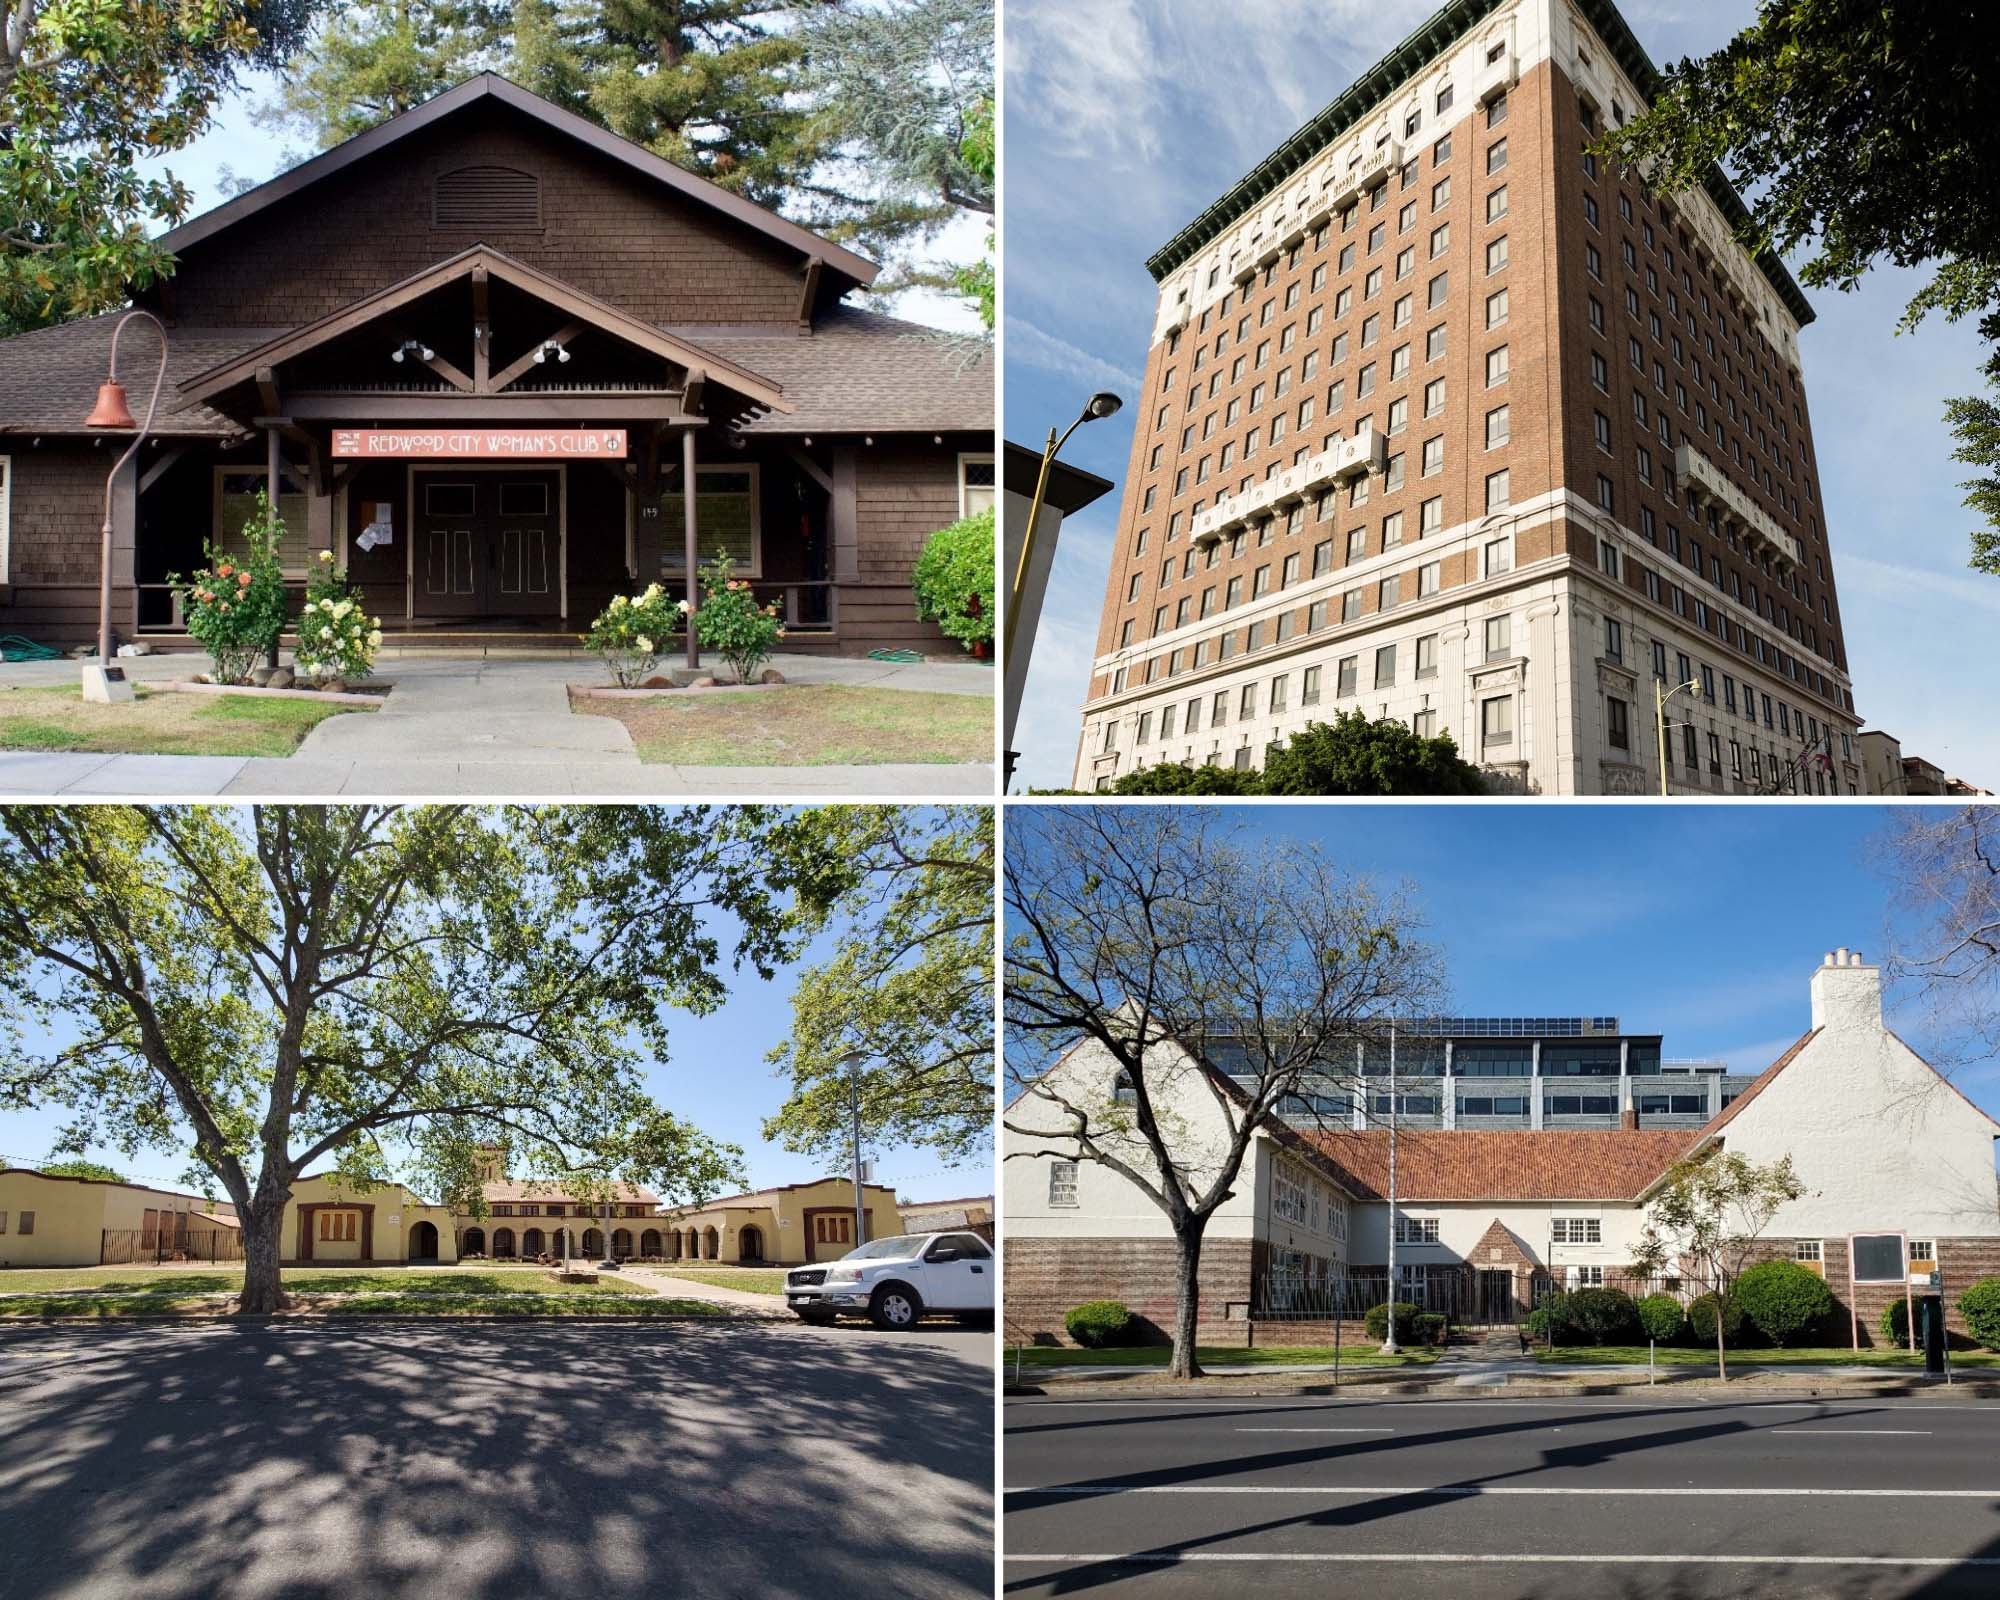 Top left:The Redwood City Woman's Club in San Mateo County. Top right: The Hotel Mayfair in Los Angeles County. Bottom right: North Sacramento School in Sacramento County. Bottom left: Thomas Jefferson School in Sacramento County.